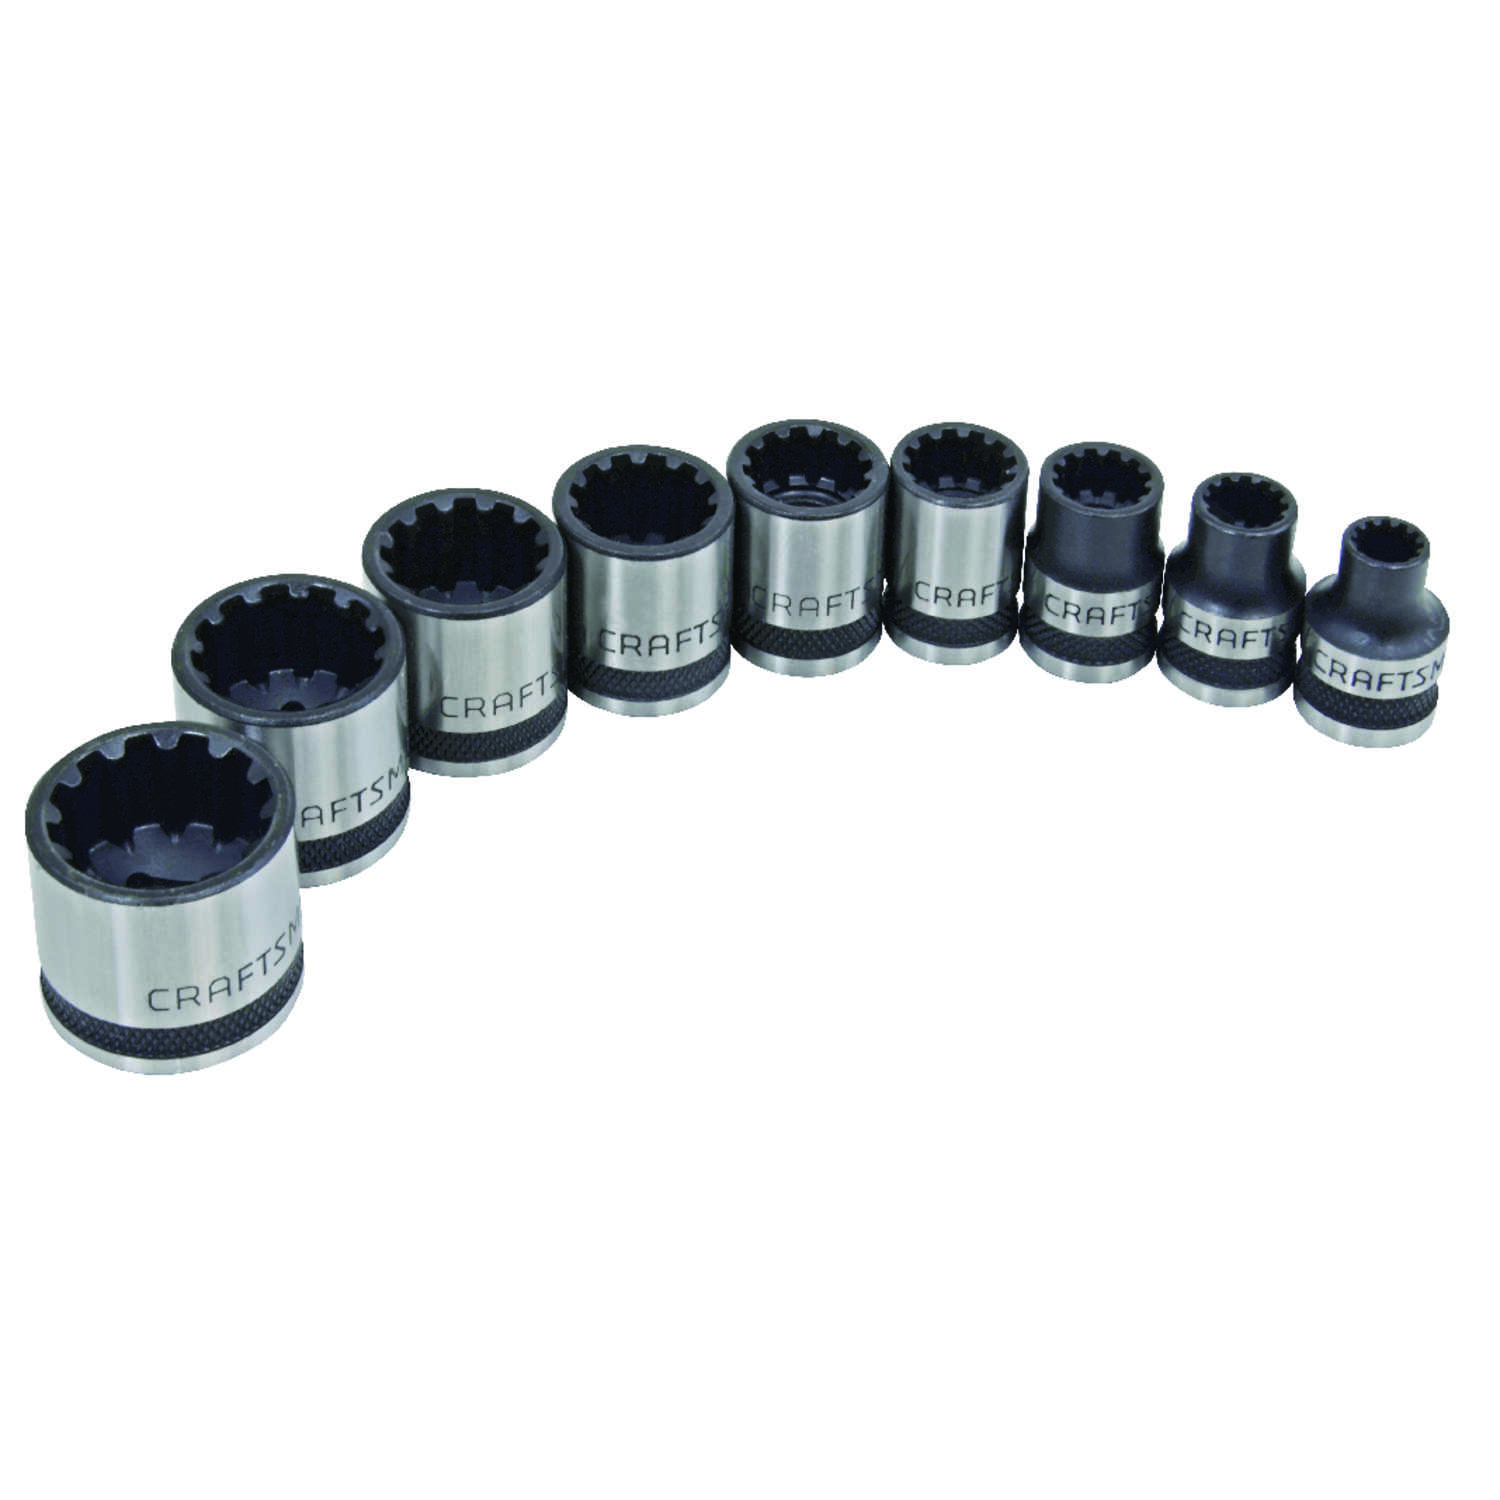 Craftsman  5/8 in.  x 3/8 in. drive  SAE  6 and 12 Point Standard  Universal Socket Set  9 pc.